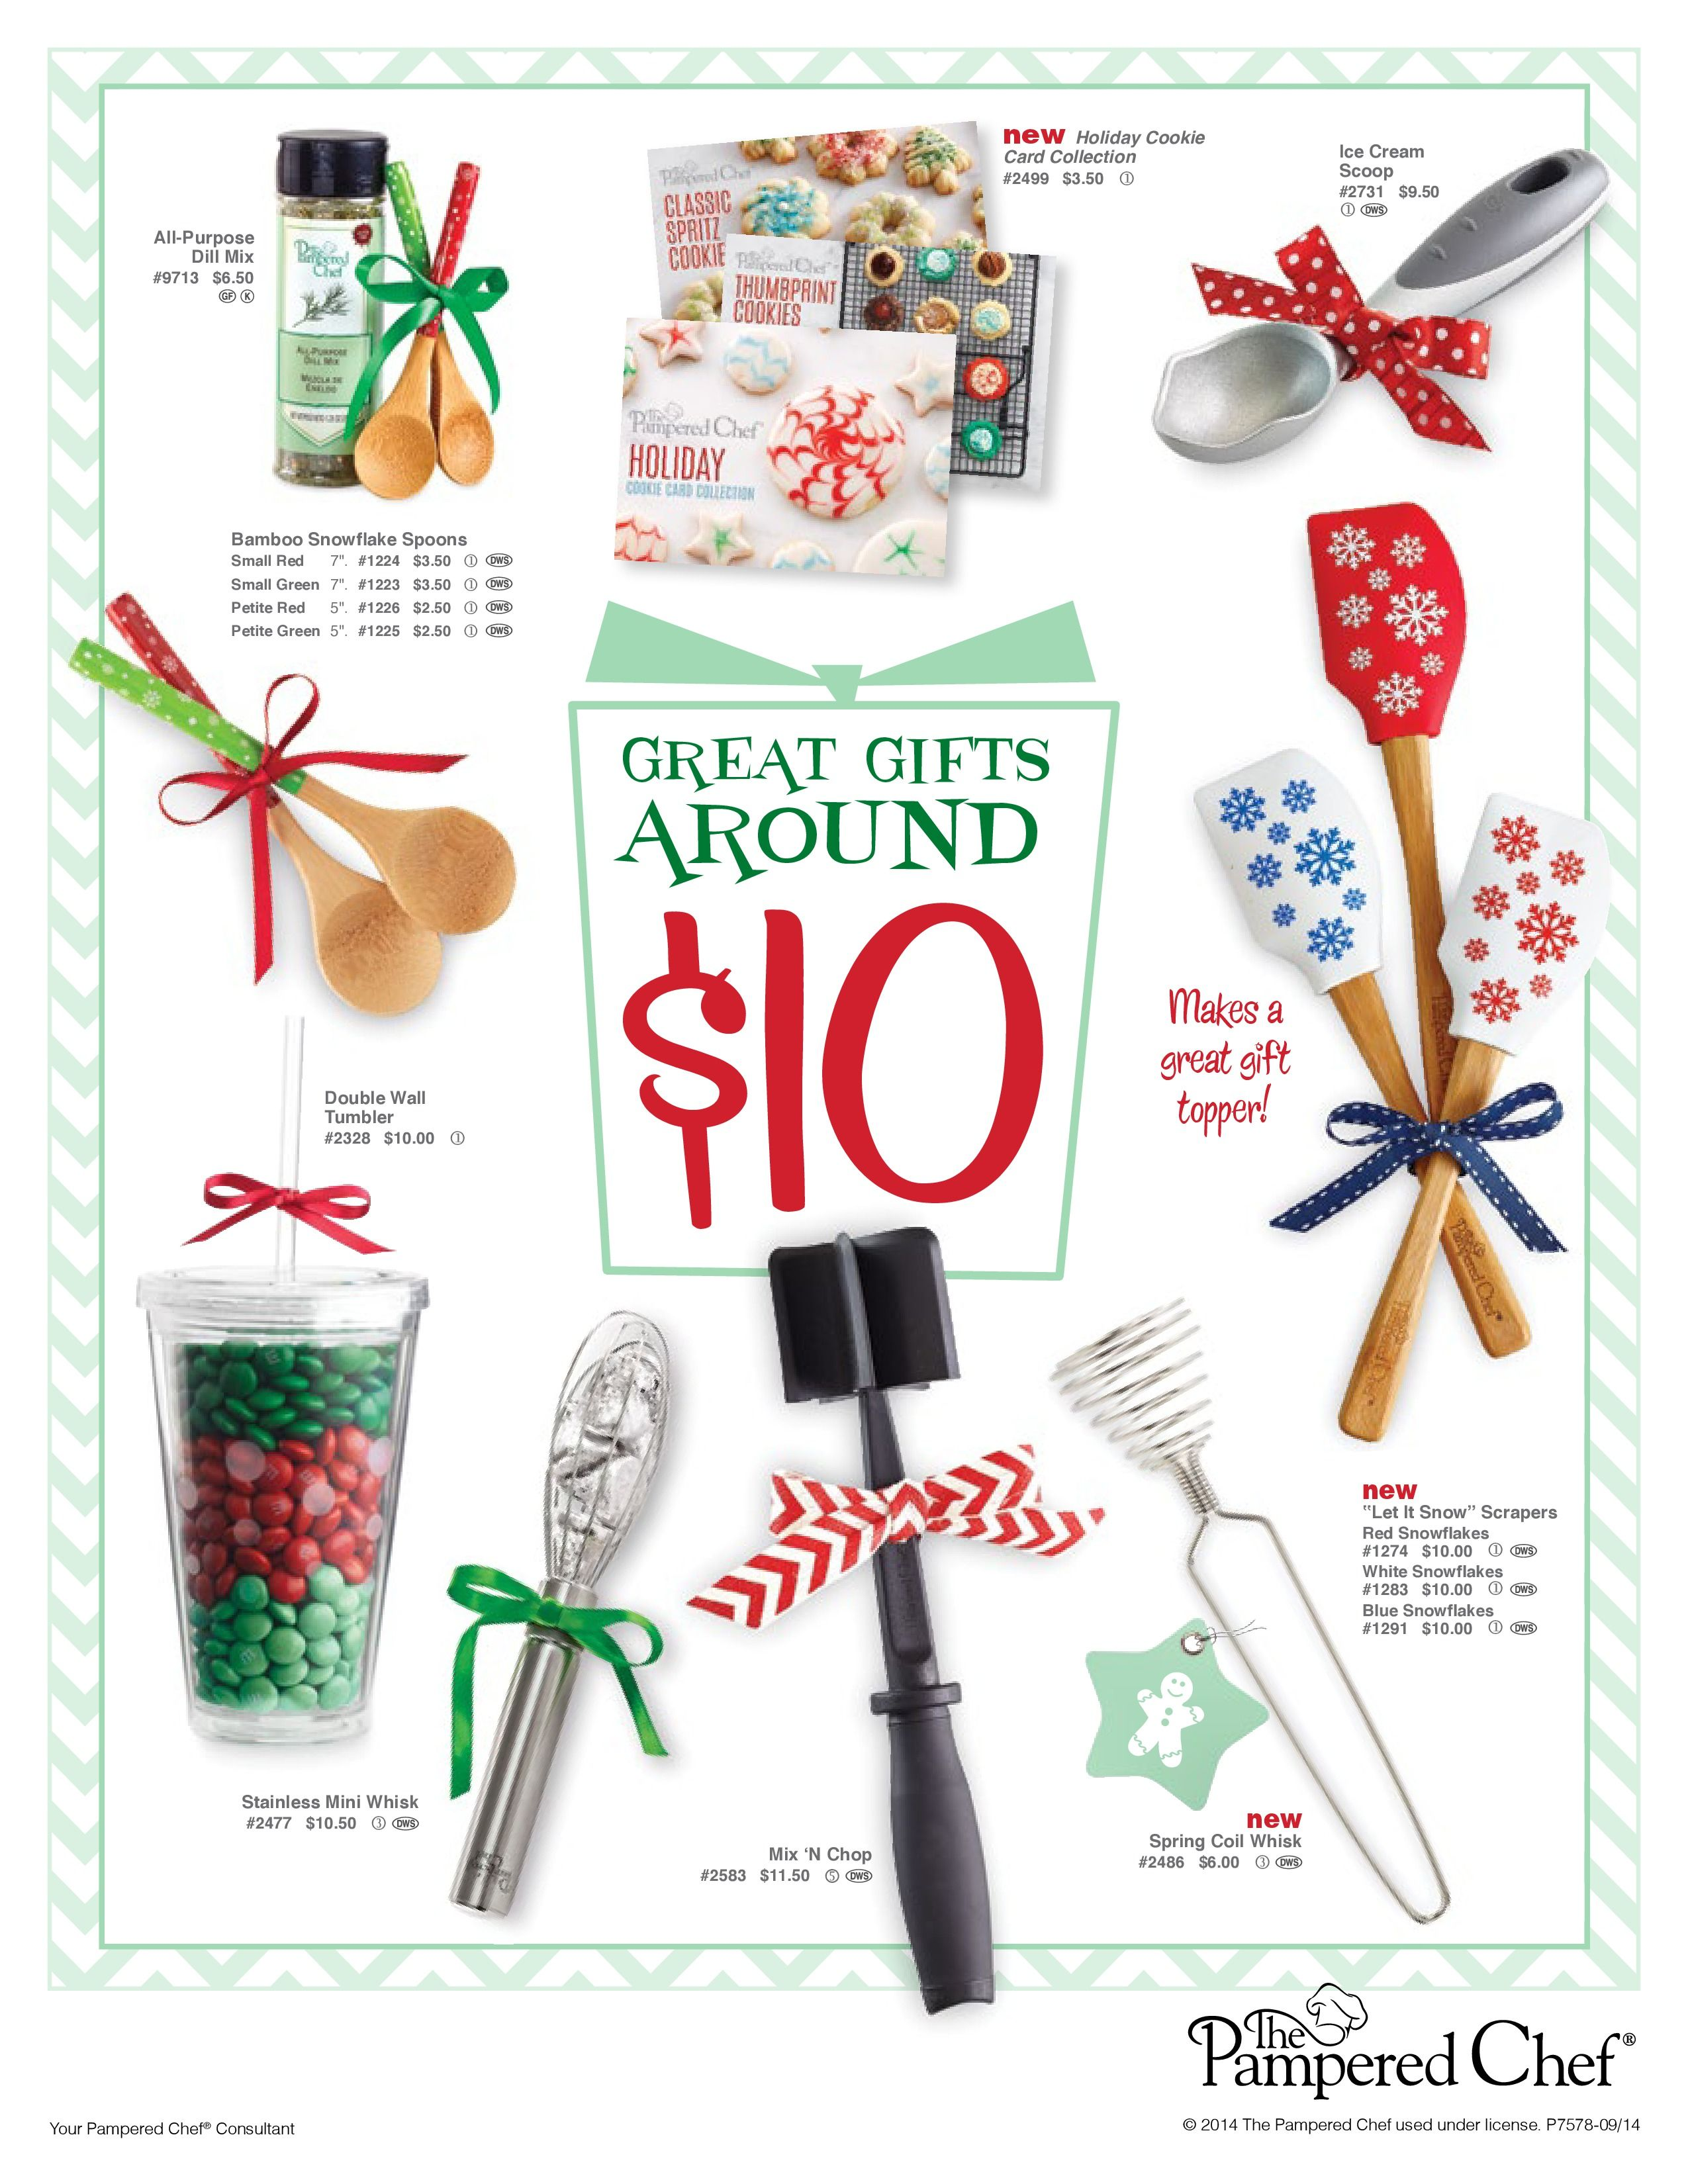 Great gifts around $10. Visit my website to place your order! http://new.pamperedchef.com/pws/lauriedickan